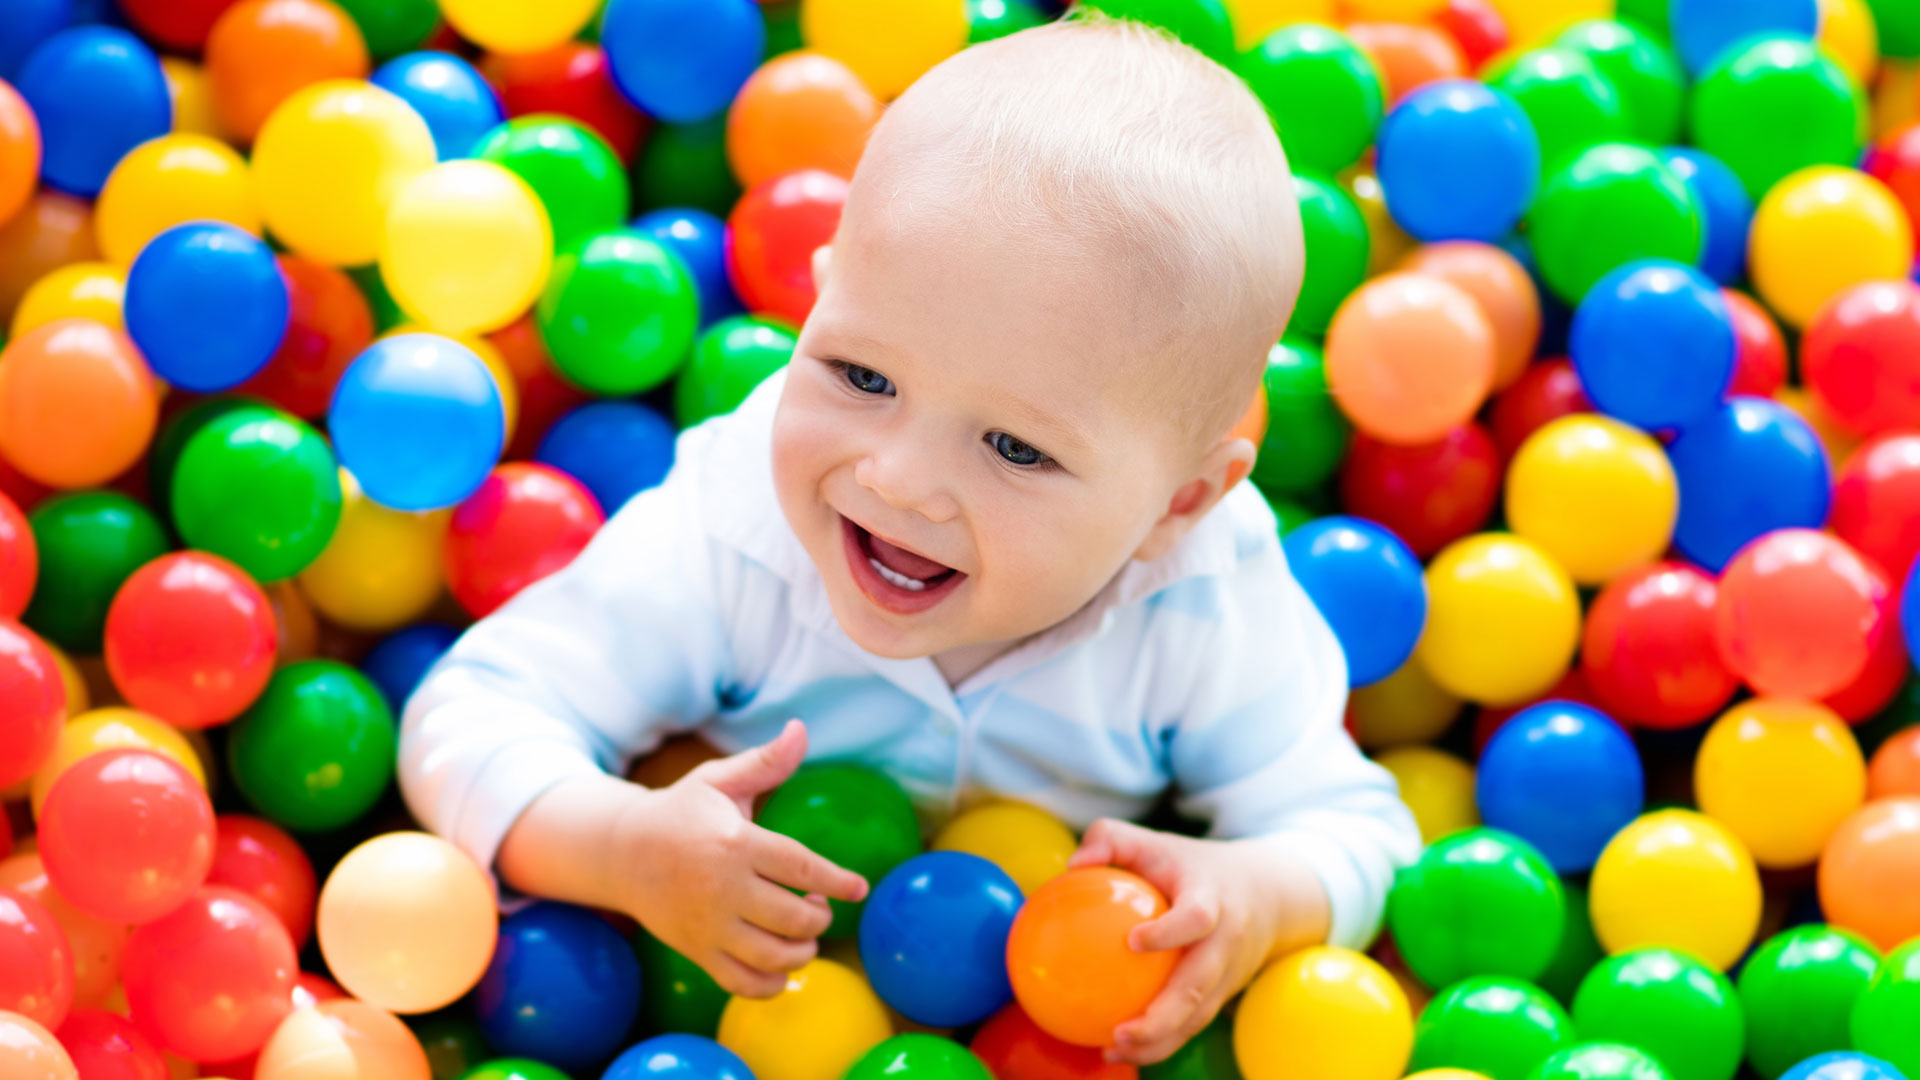 First birthdays are an important milestone in every child